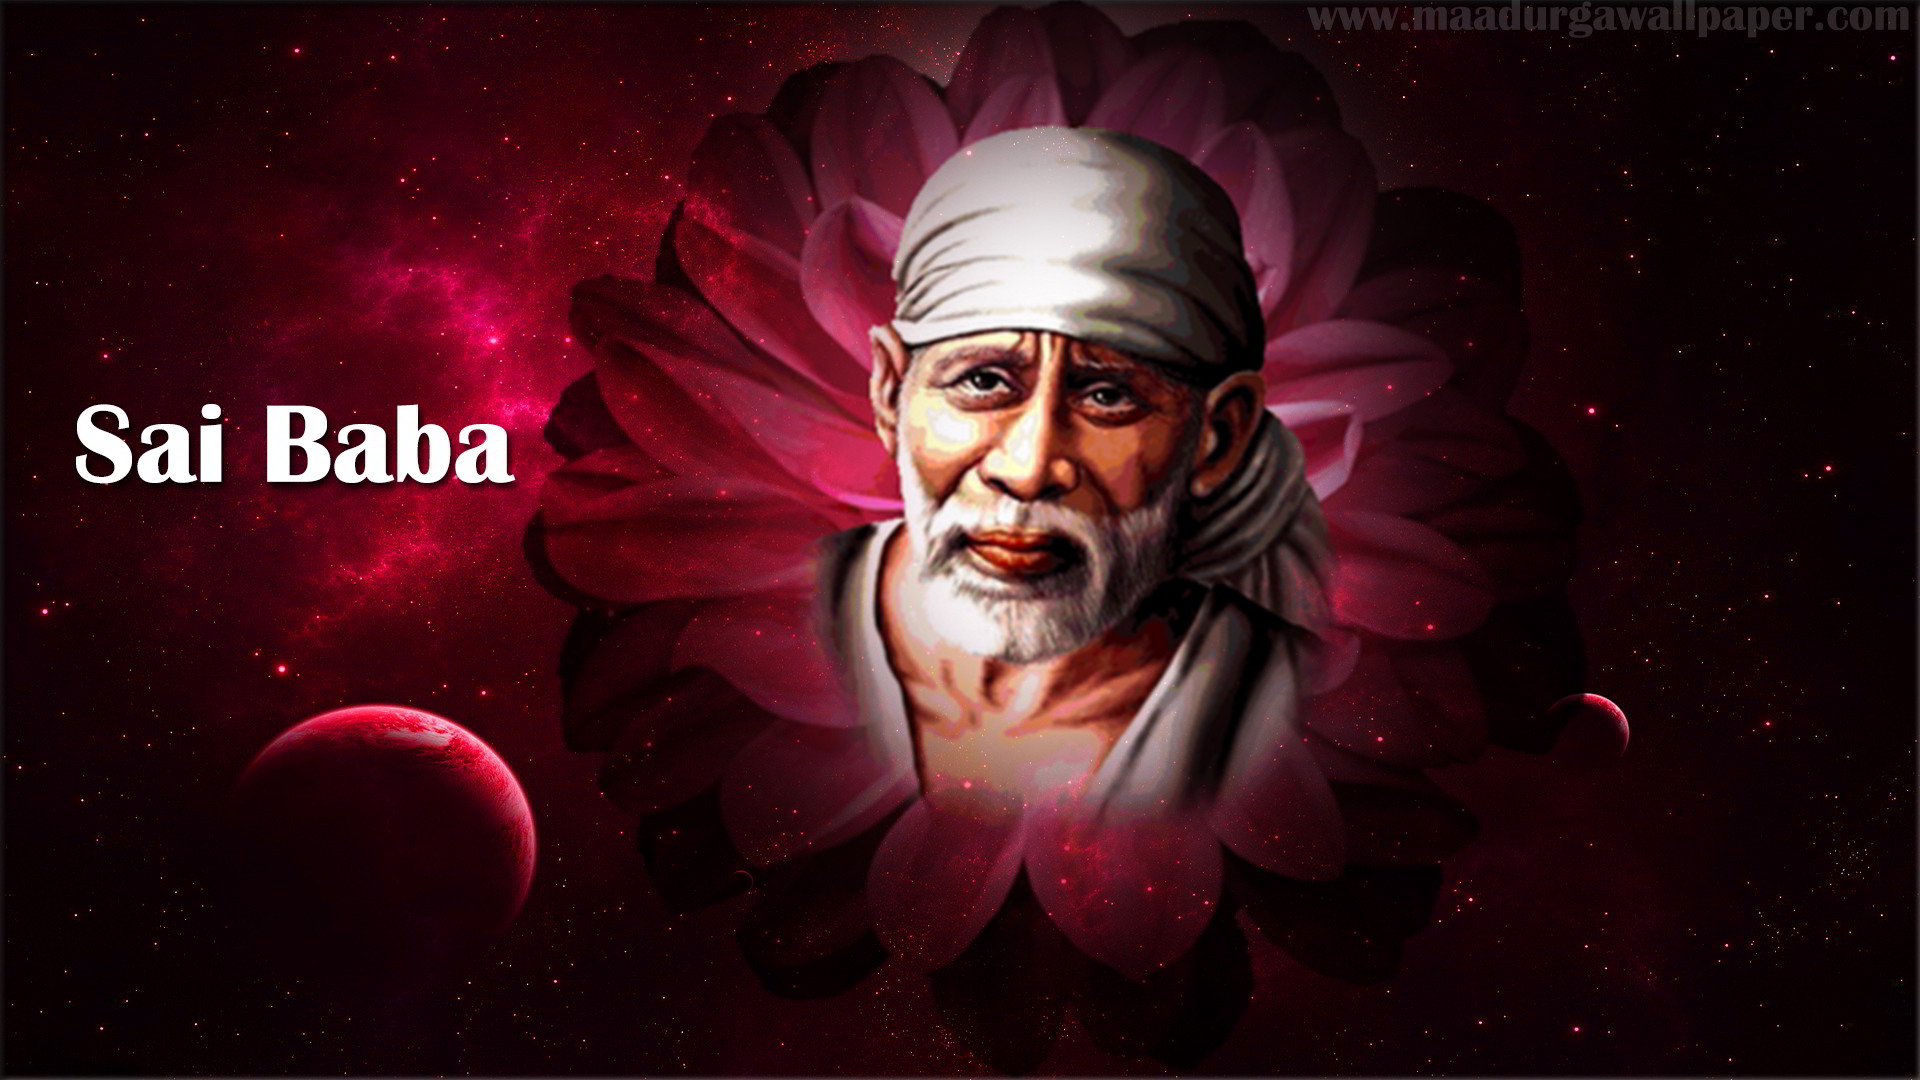 Hd wallpaper sai baba - Sai Baba Images Sai Baba Photos Hd Wallpapers